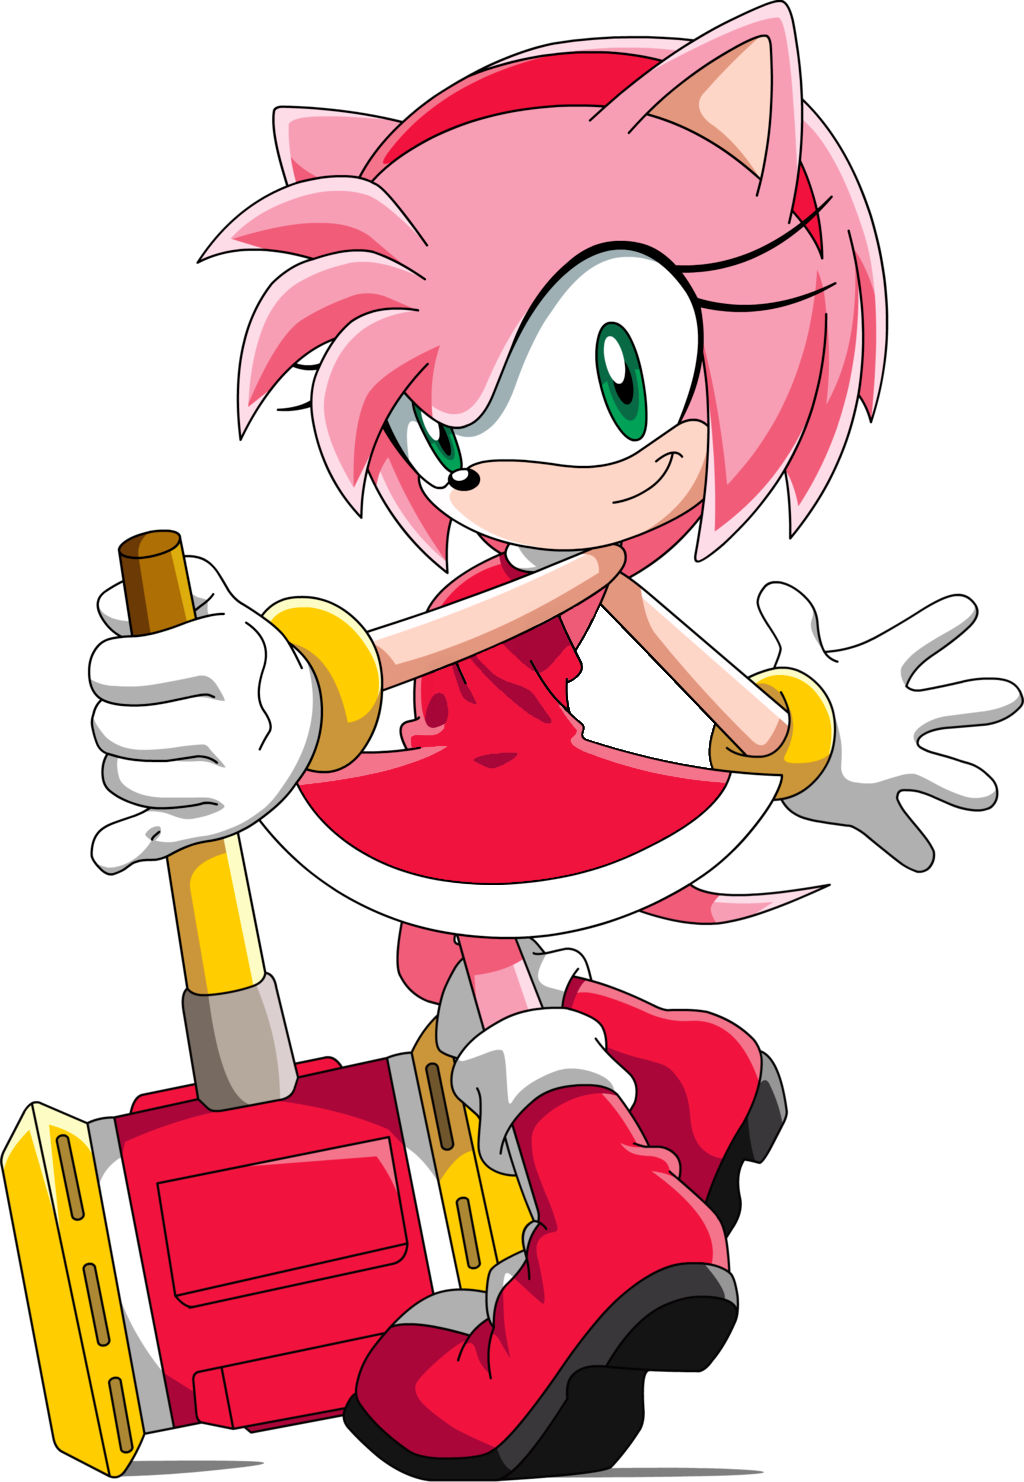 sonic Sonic x amy rose and